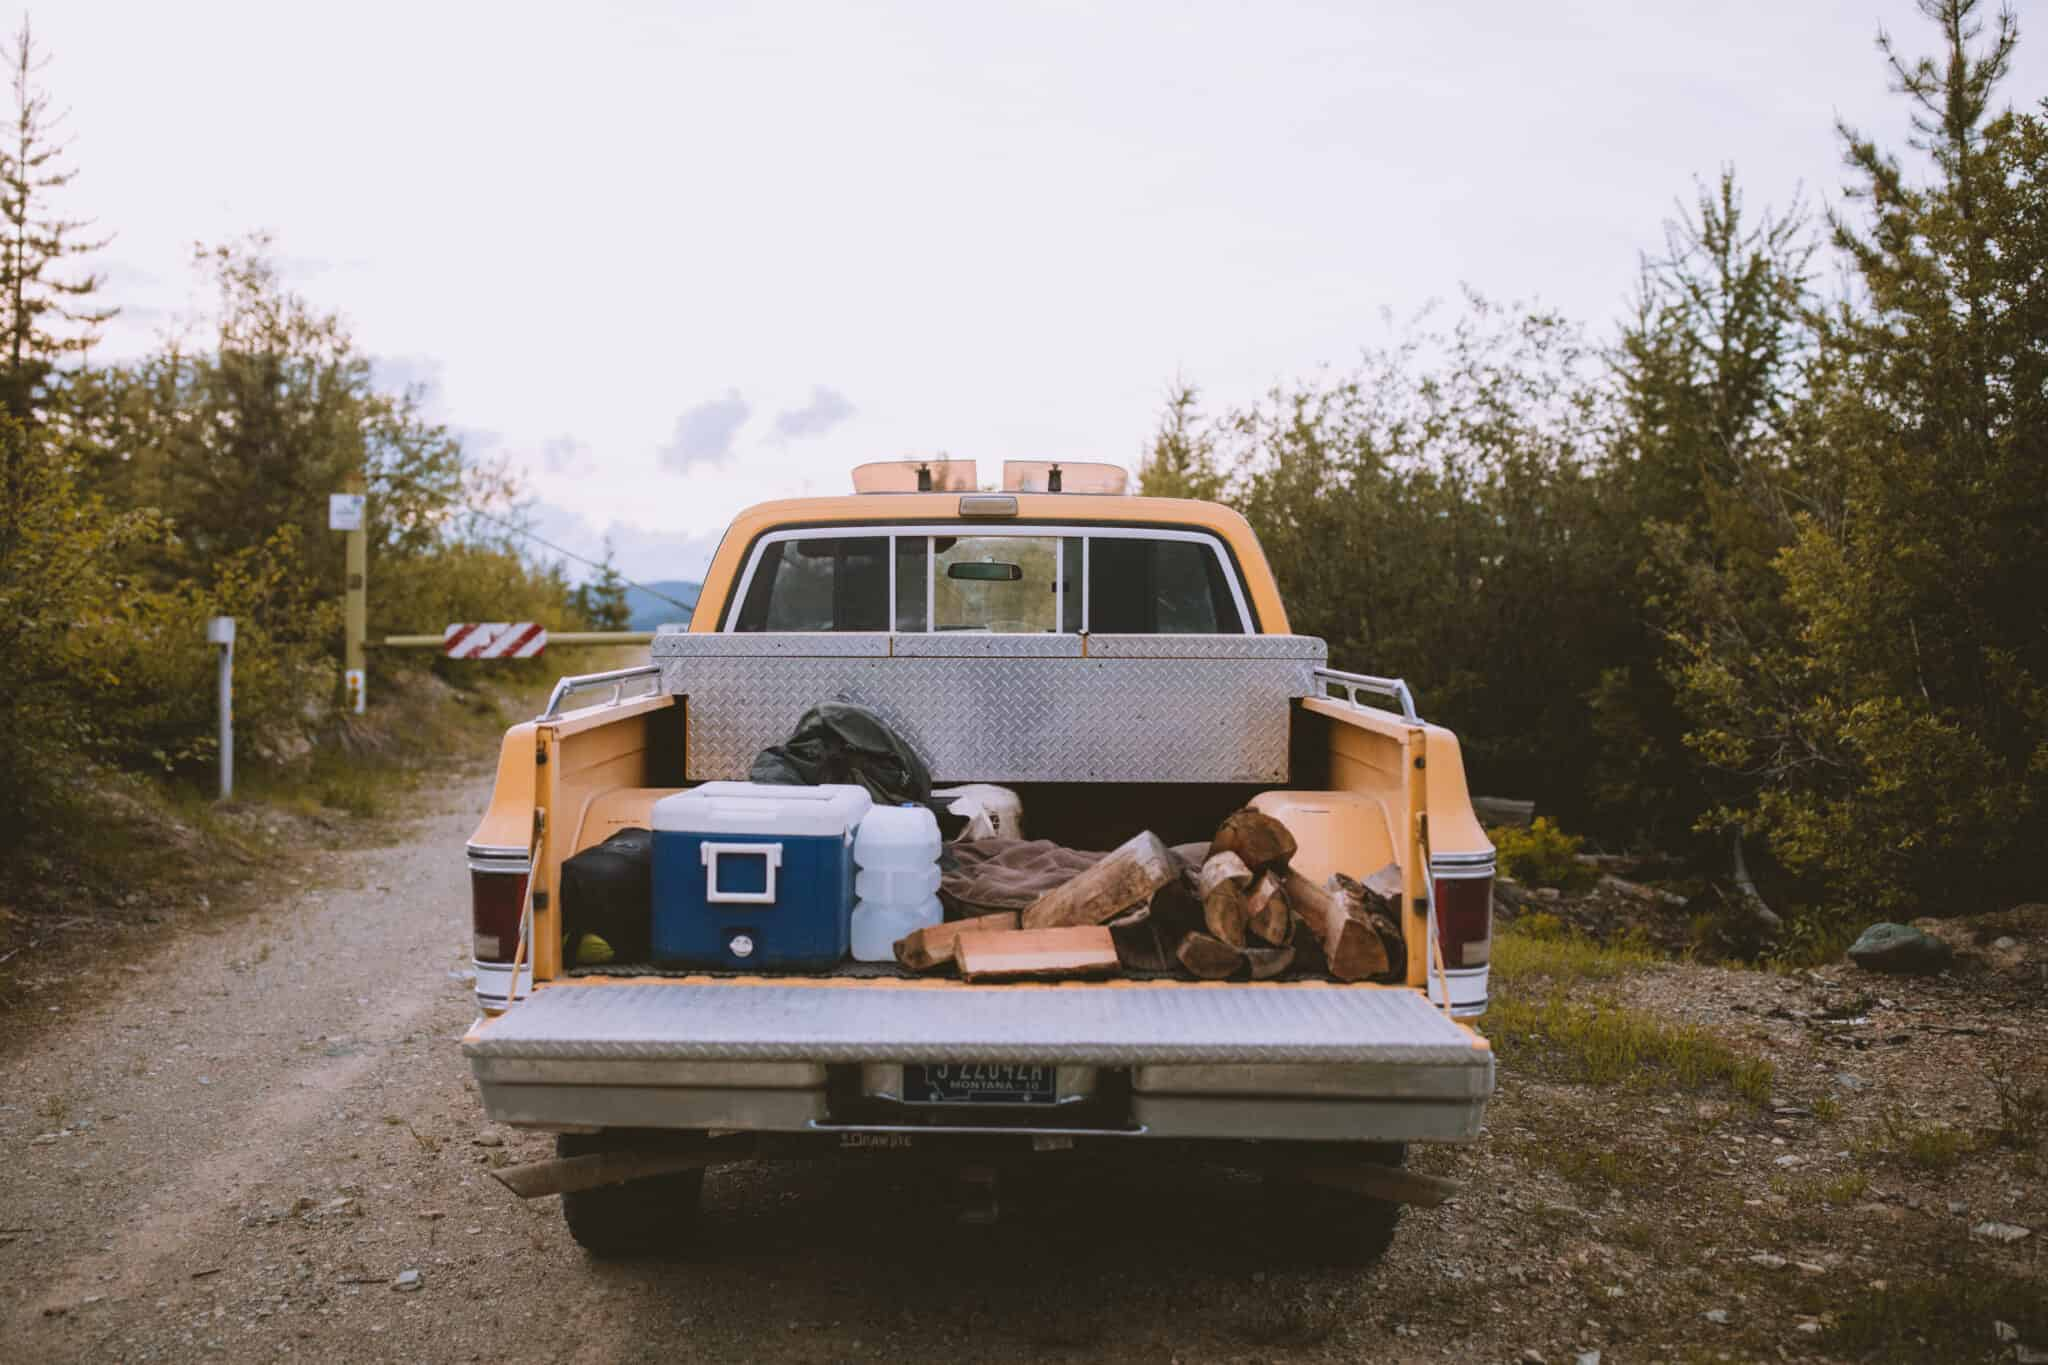 Camping Gear In Truck - Travel Photography Tips